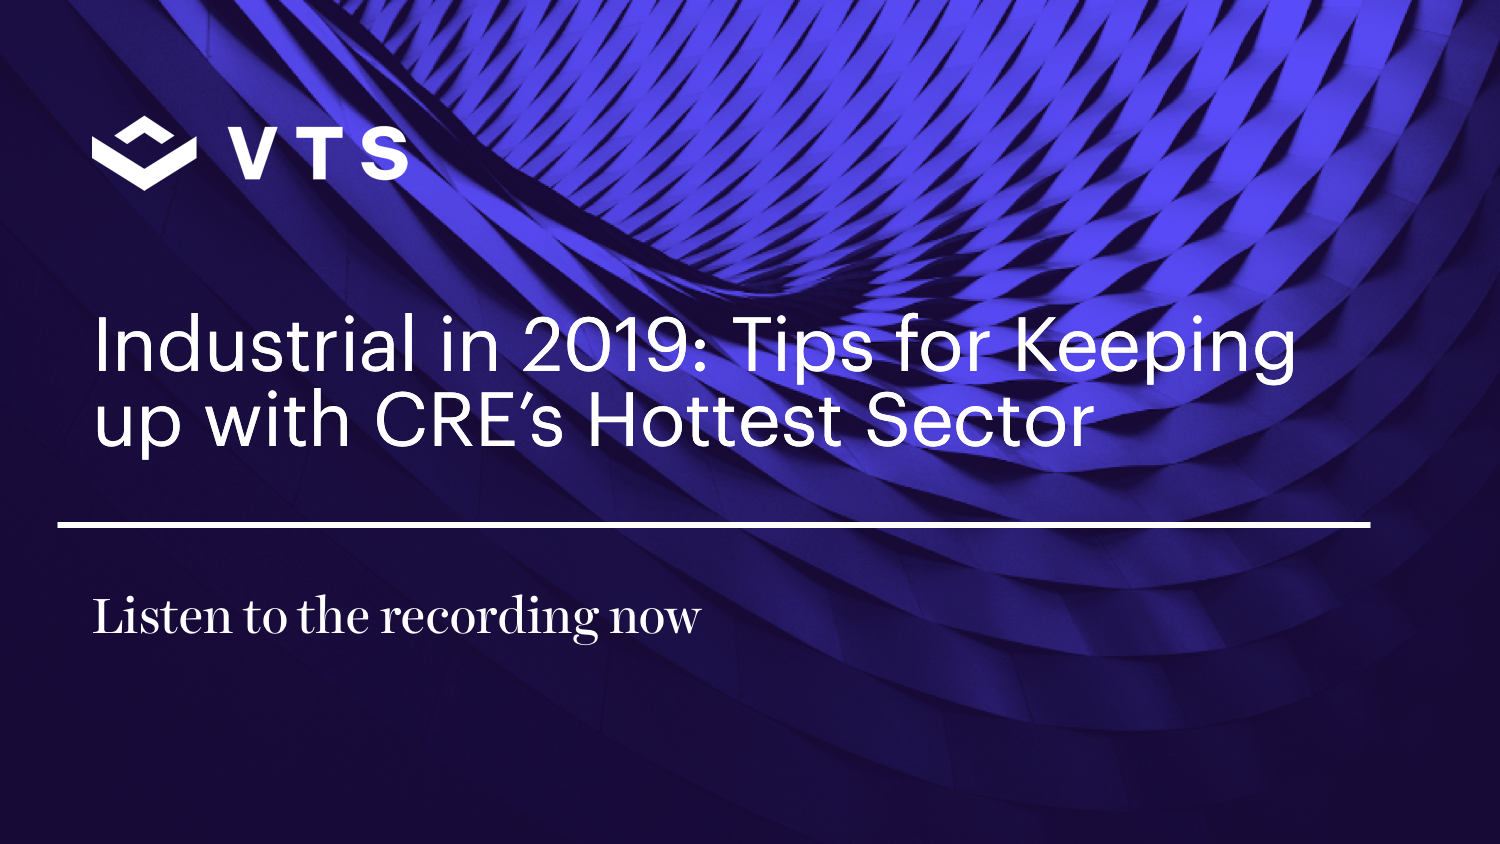 Industrial in 2019 Tips for Keeping up with CRE's Hottest Sector